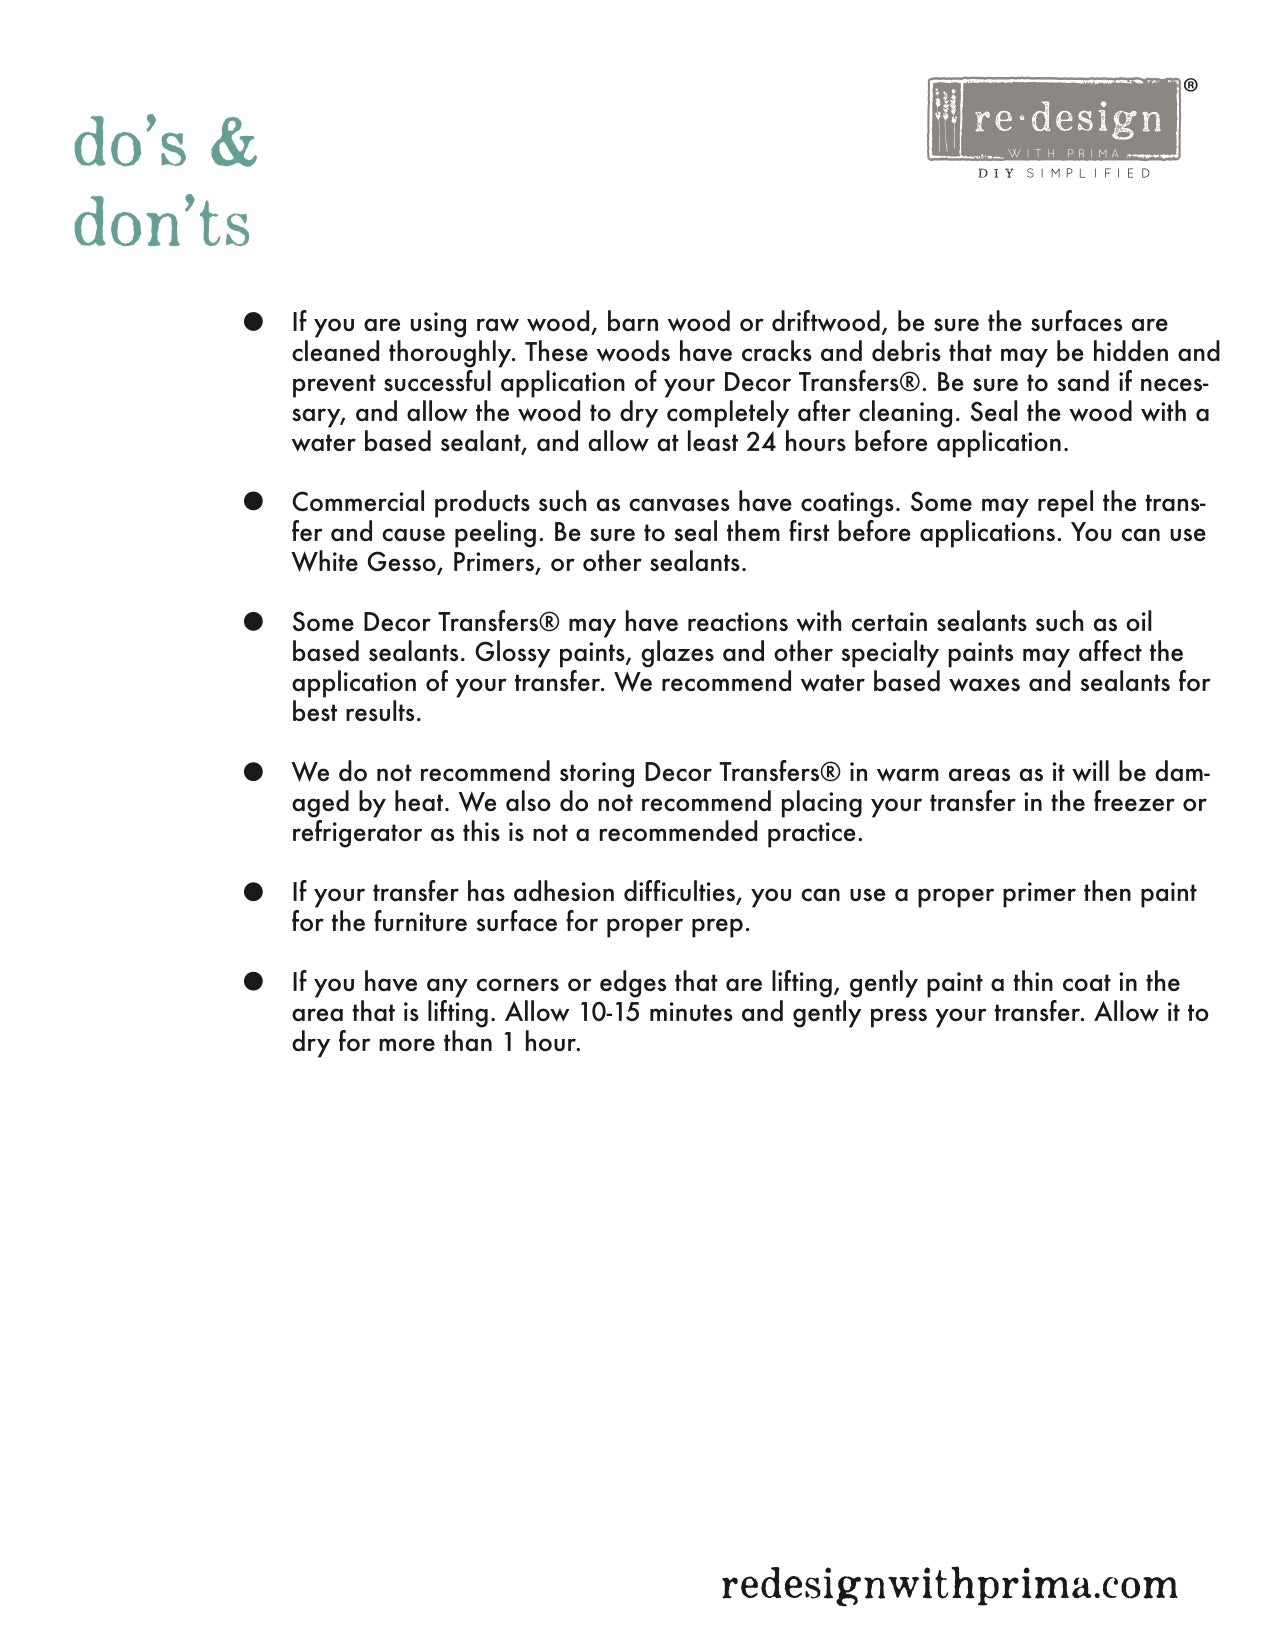 Redesign with Prima Transfer Dos Don'ts Page 2